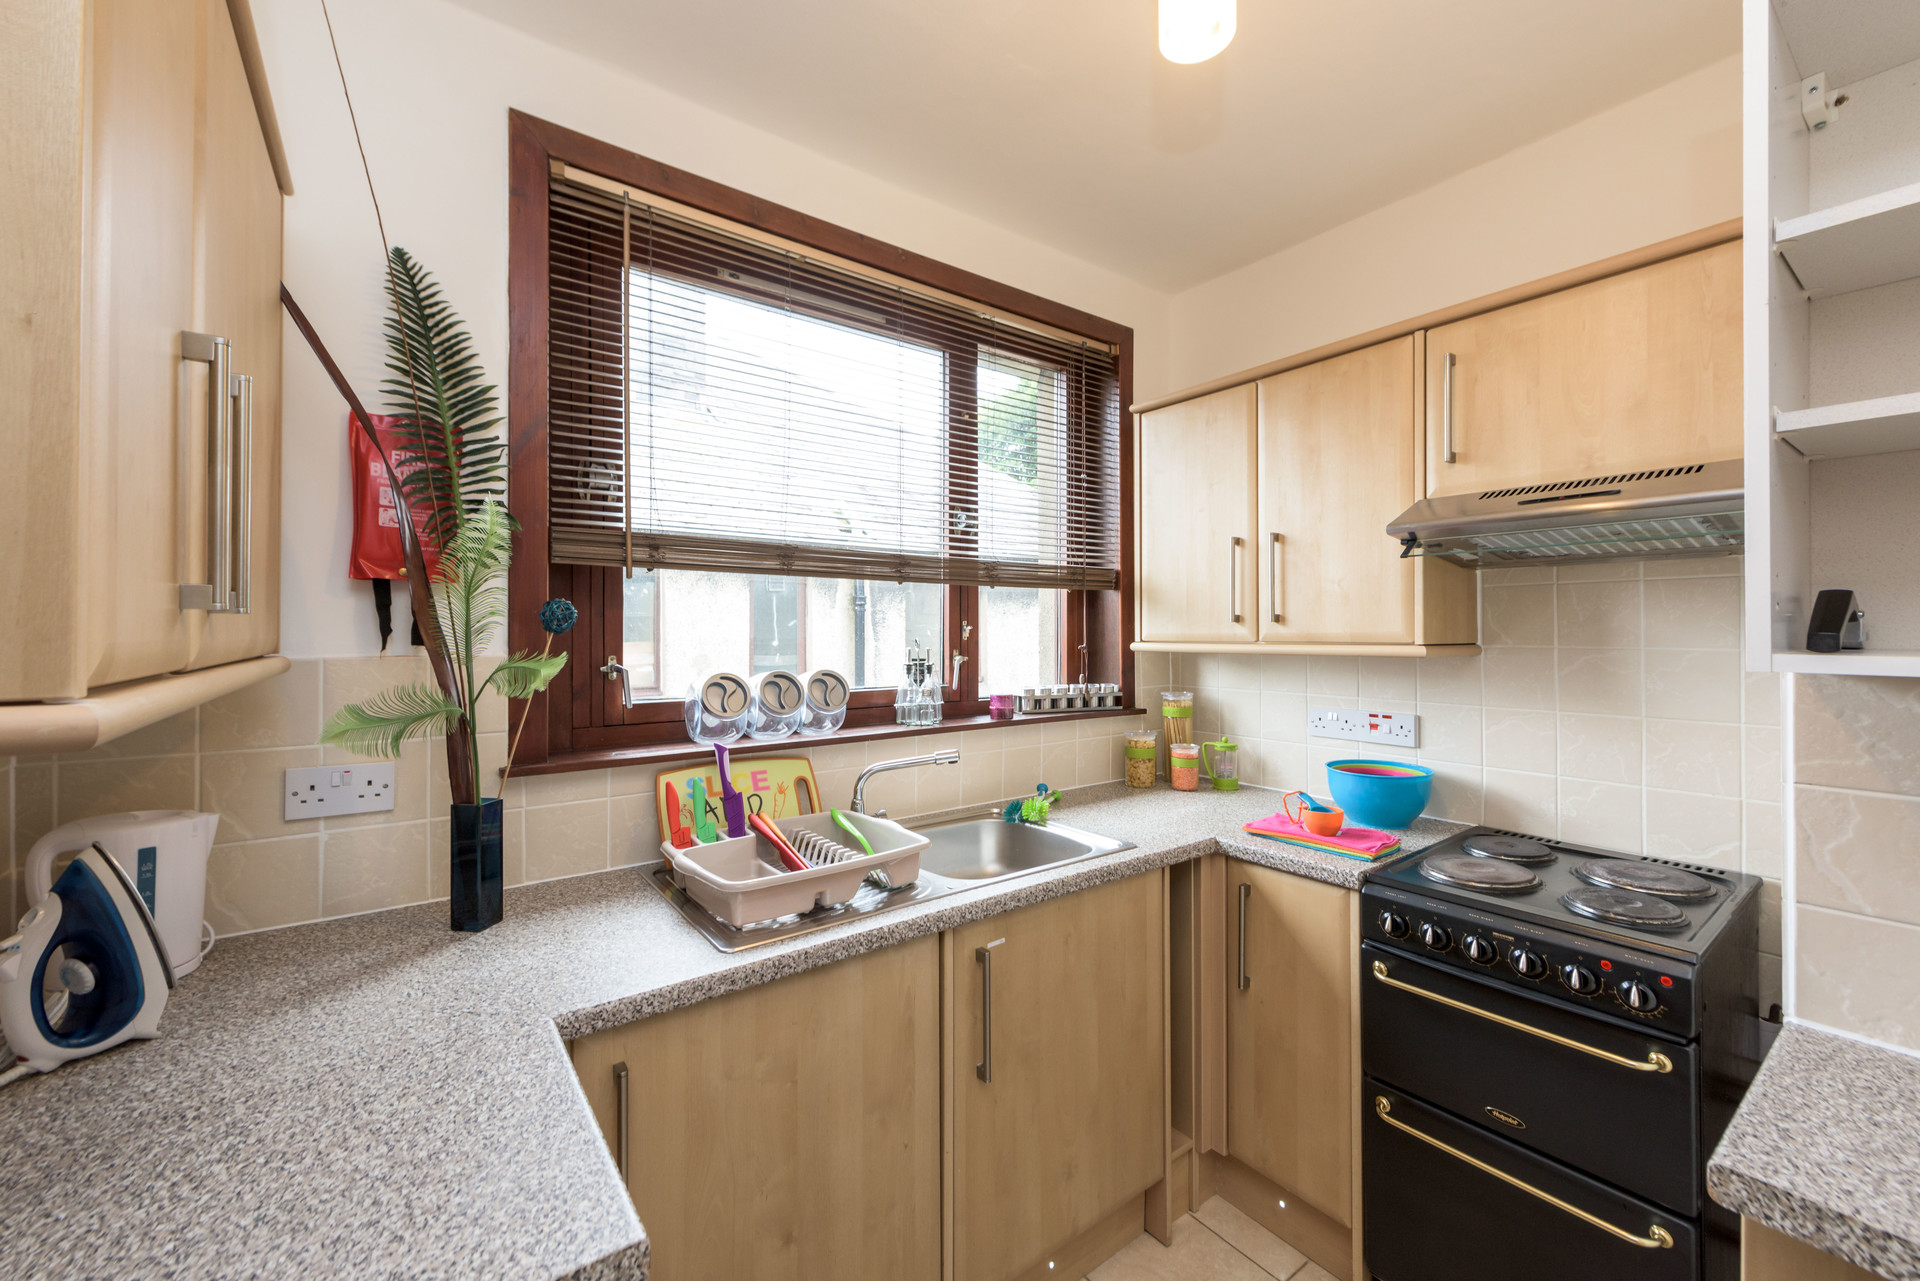 minutes-walk-to-abdn-uni-large-room-with-double-bed-all-bills-incl-fully-furnished-brightairy-459c9c53784bdfd842fb60bcfb5e02cb